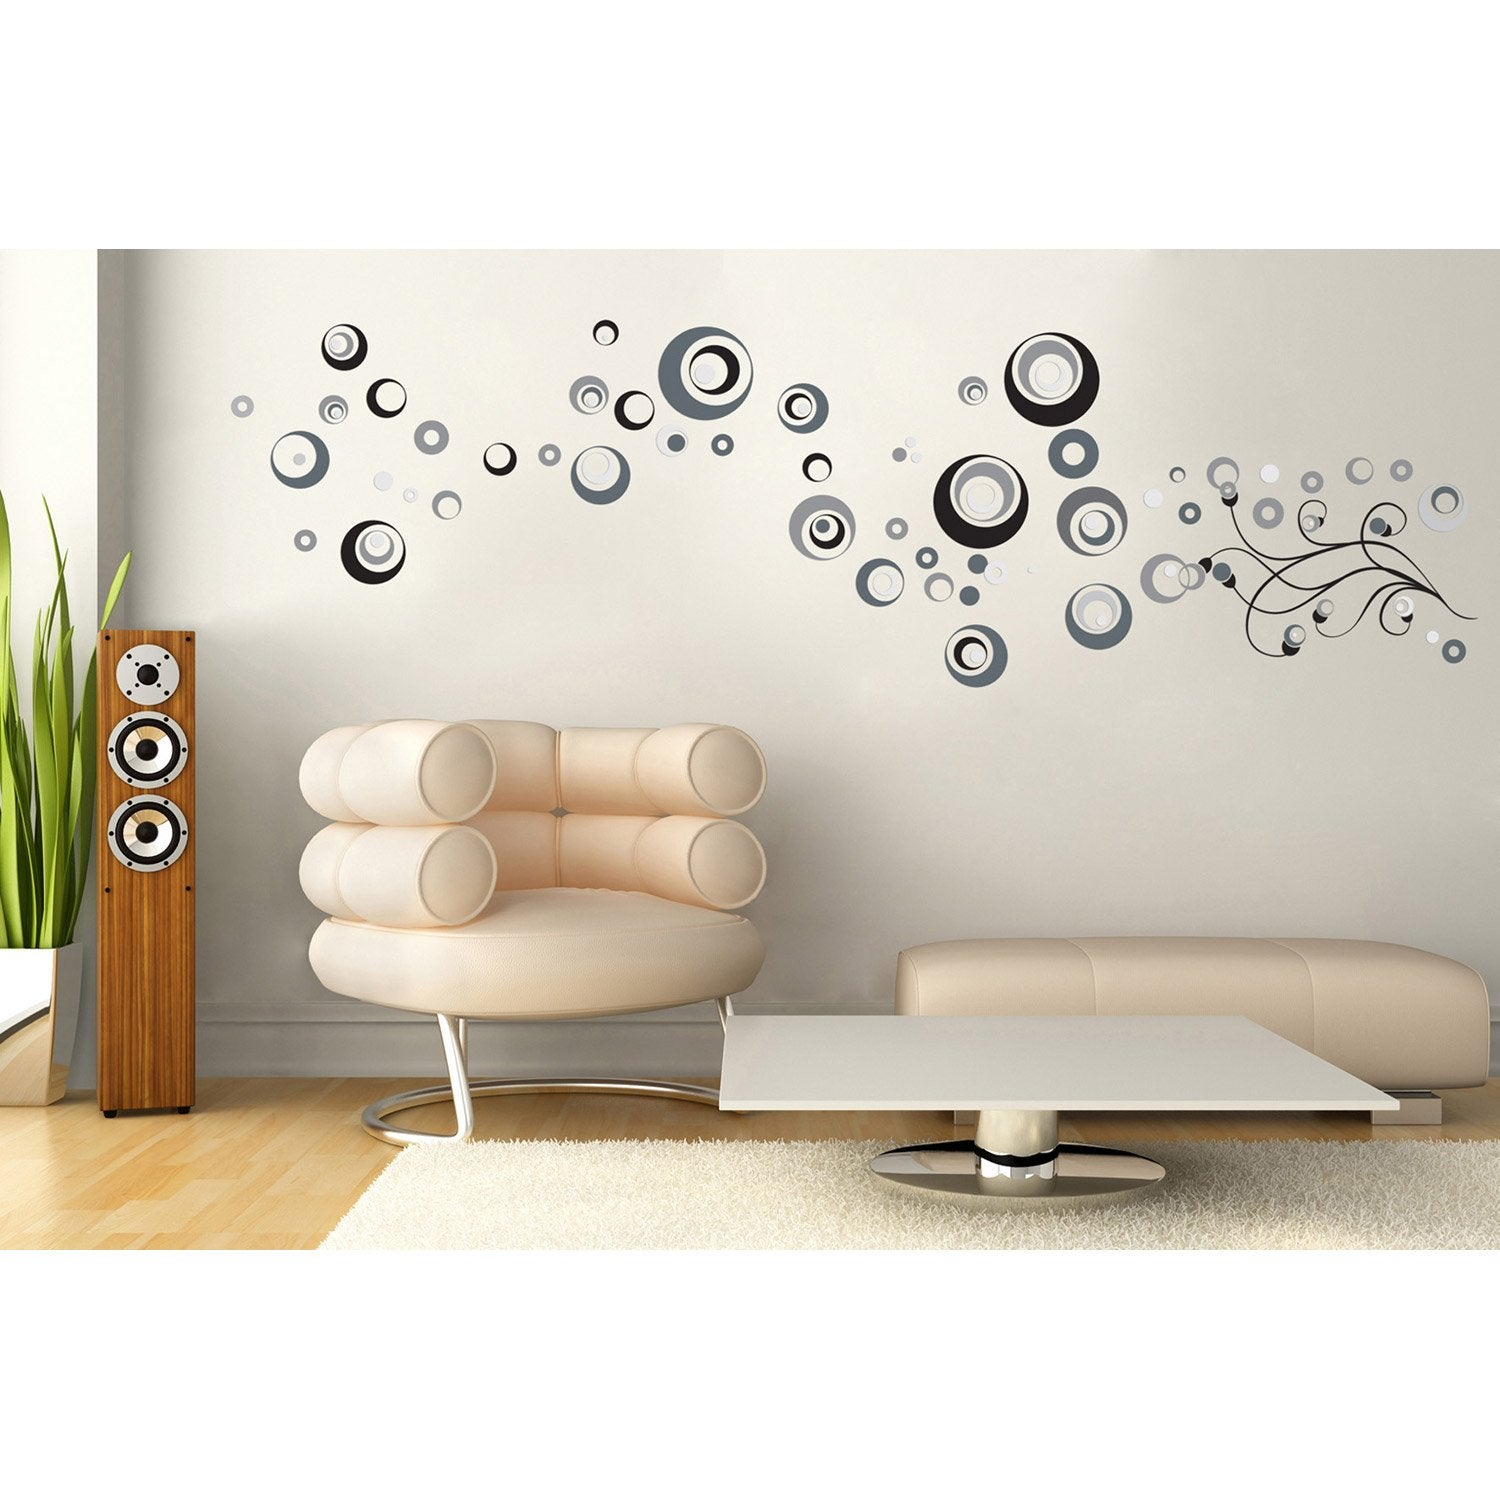 Sticker abstrait 50 cm x 70 cm leroy merlin - Sticker mural leroy merlin ...